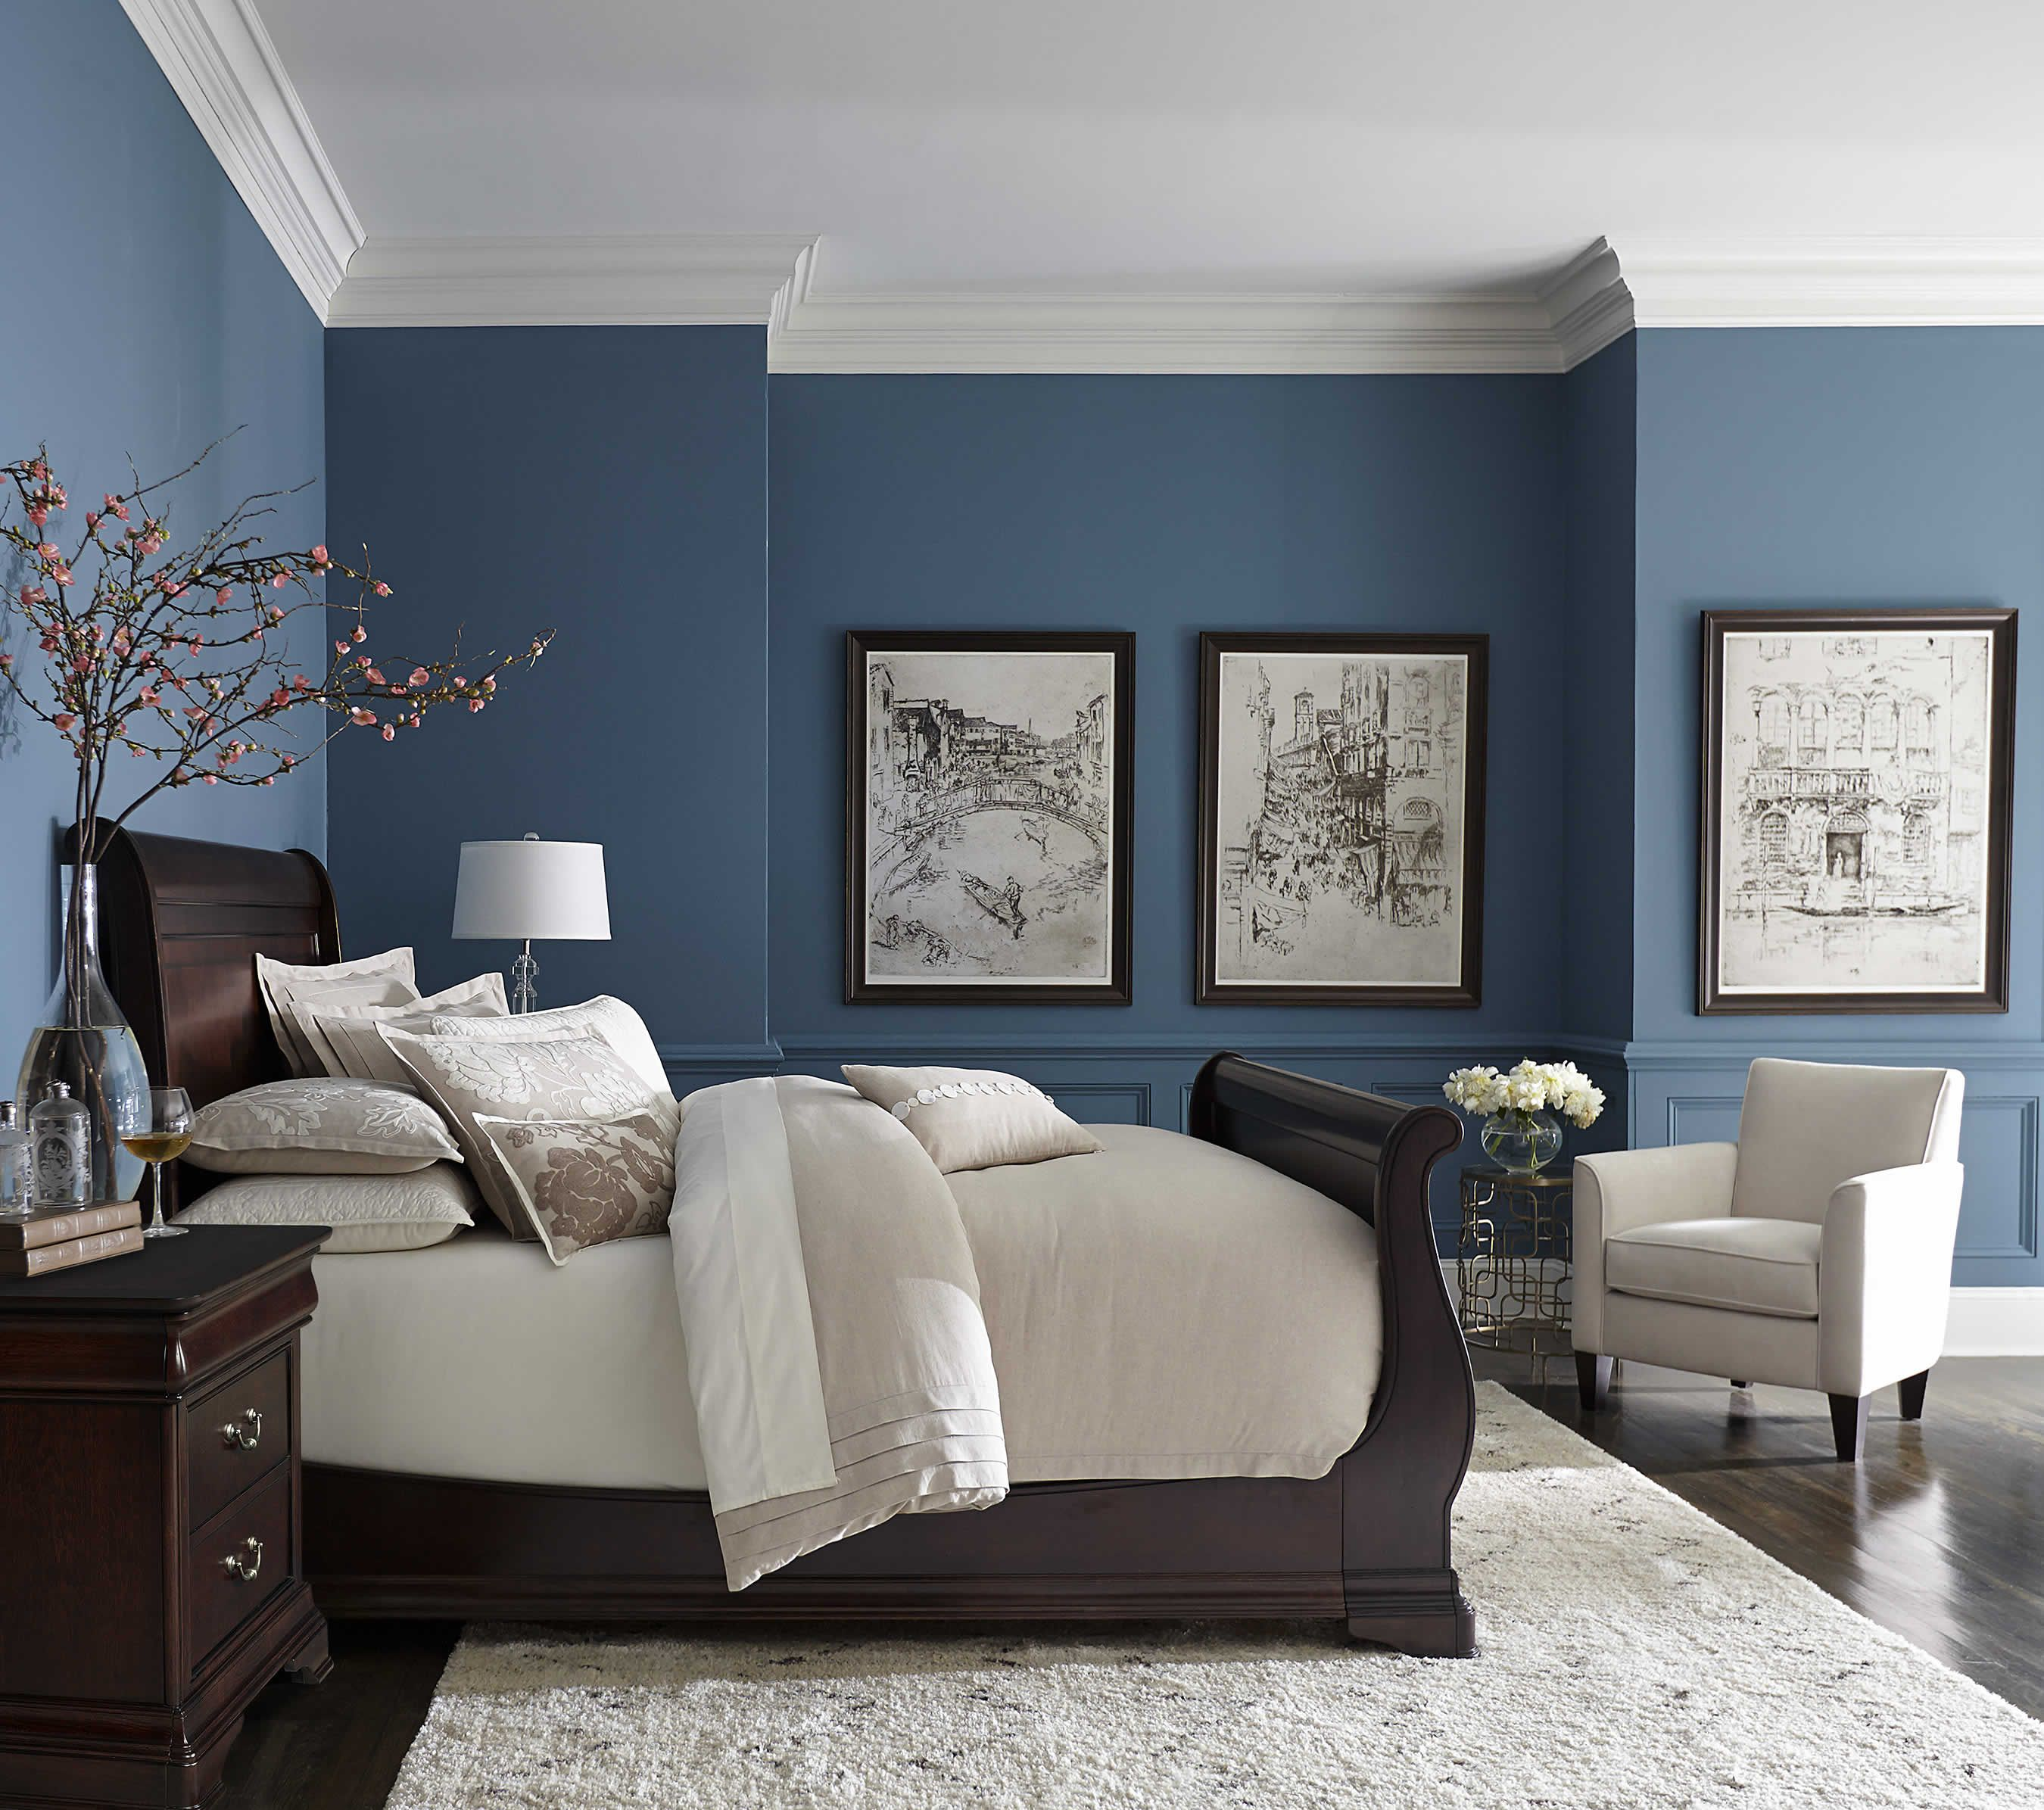 pretty blue color with white crown molding | Home ...